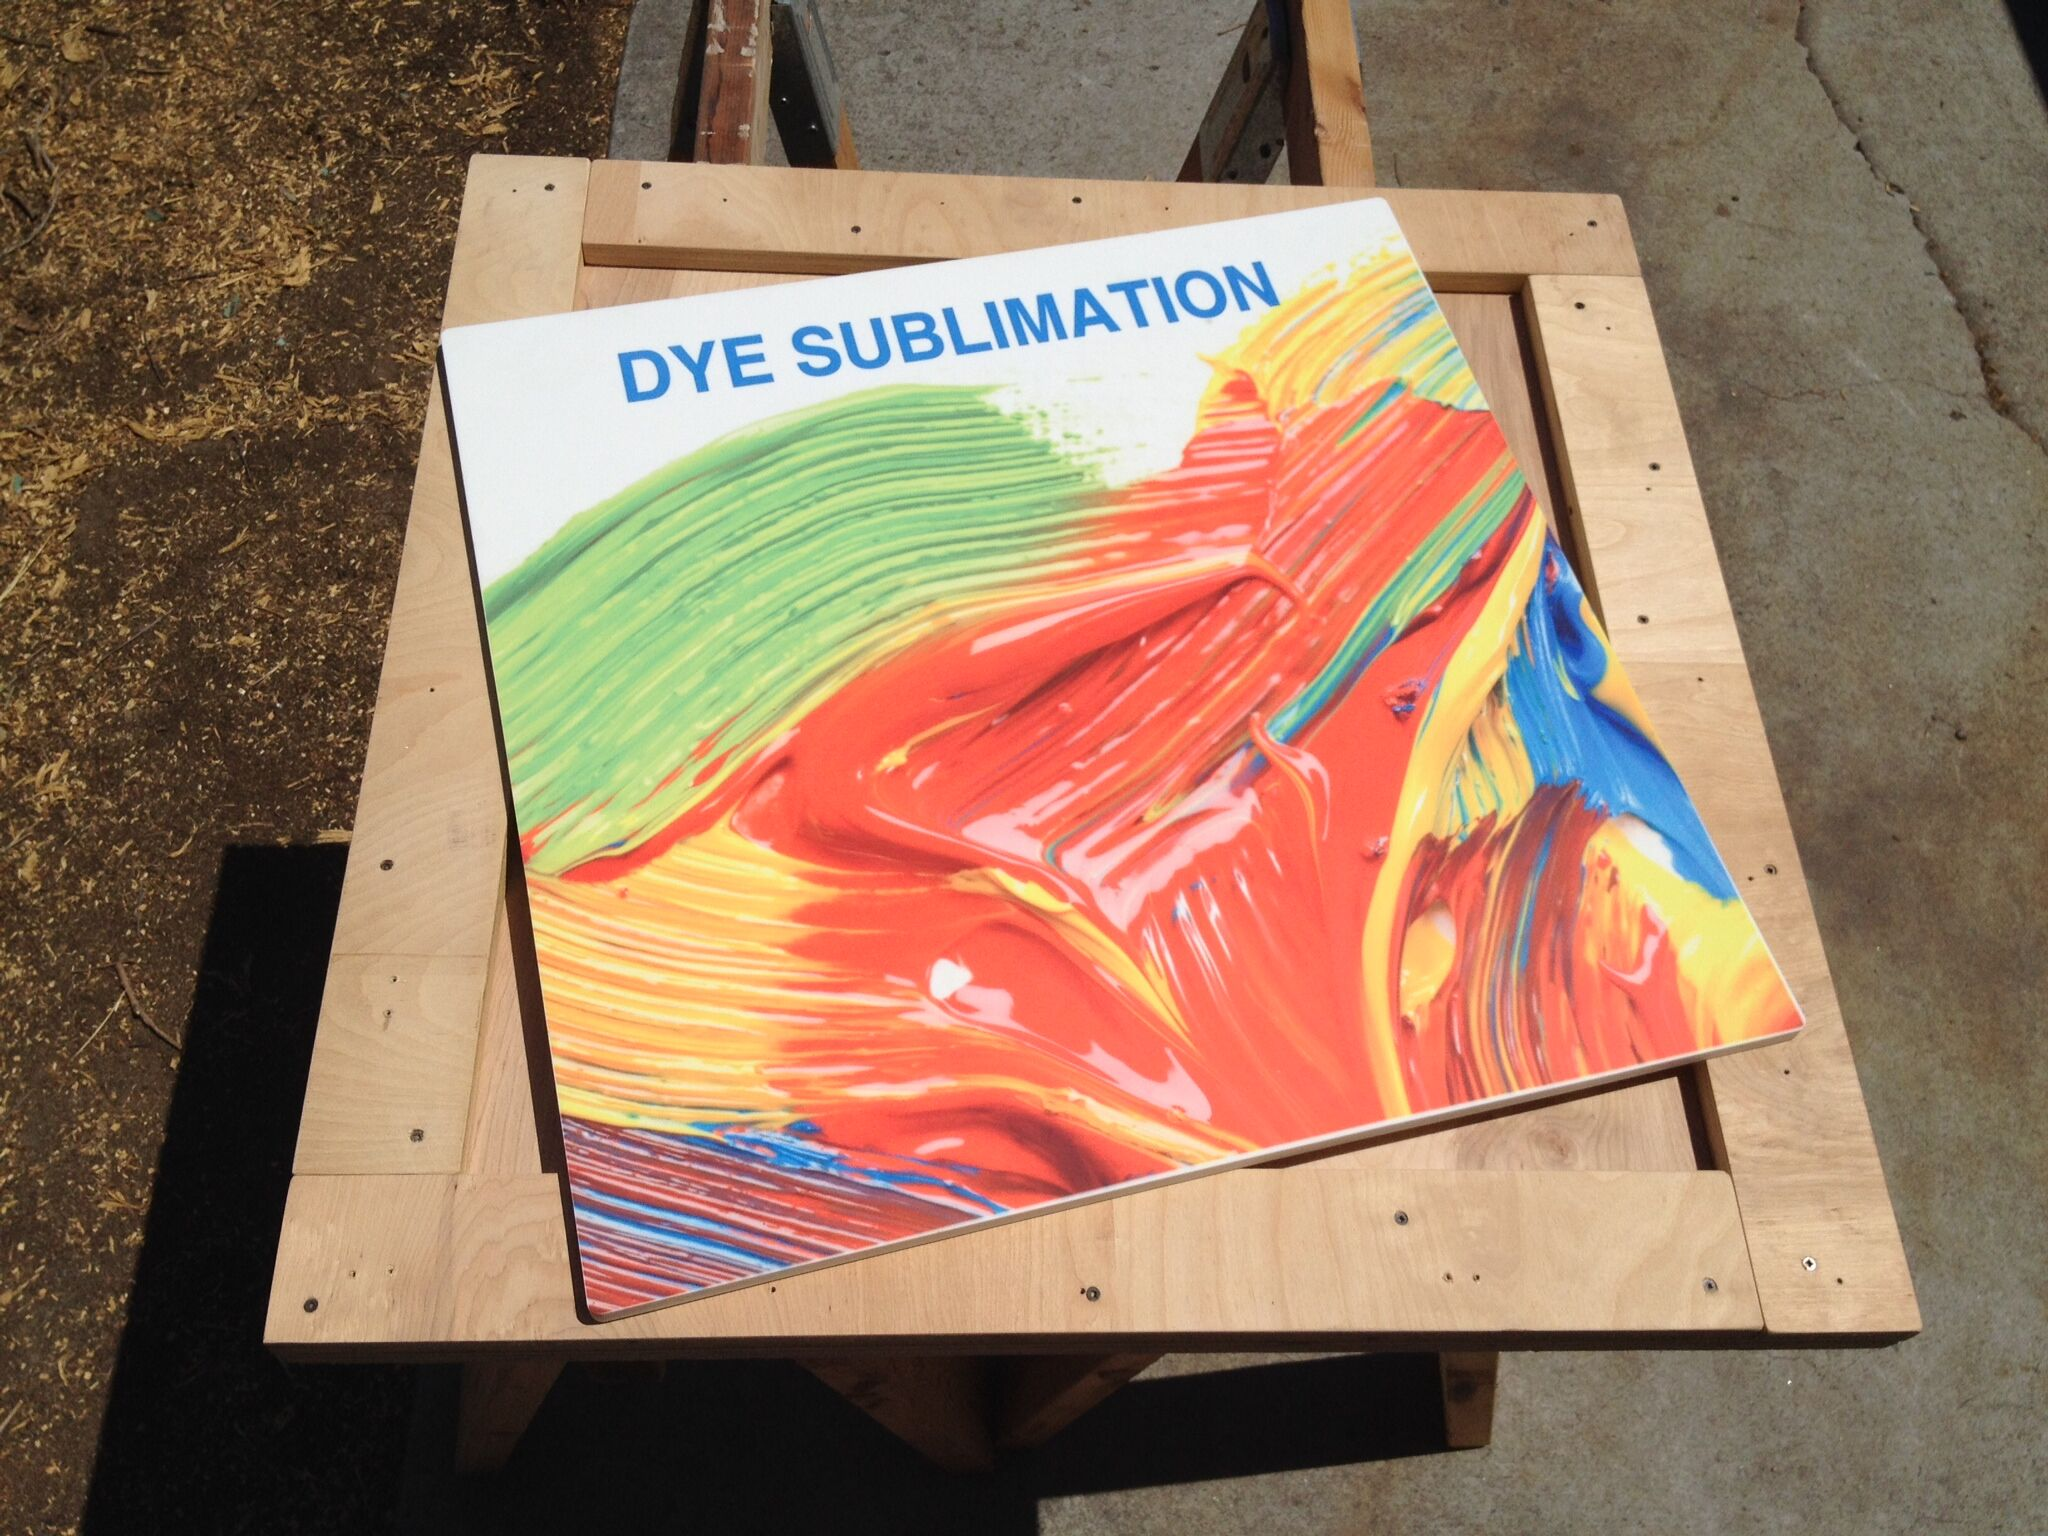 Solid Surface Signage Using Dye Sublimation